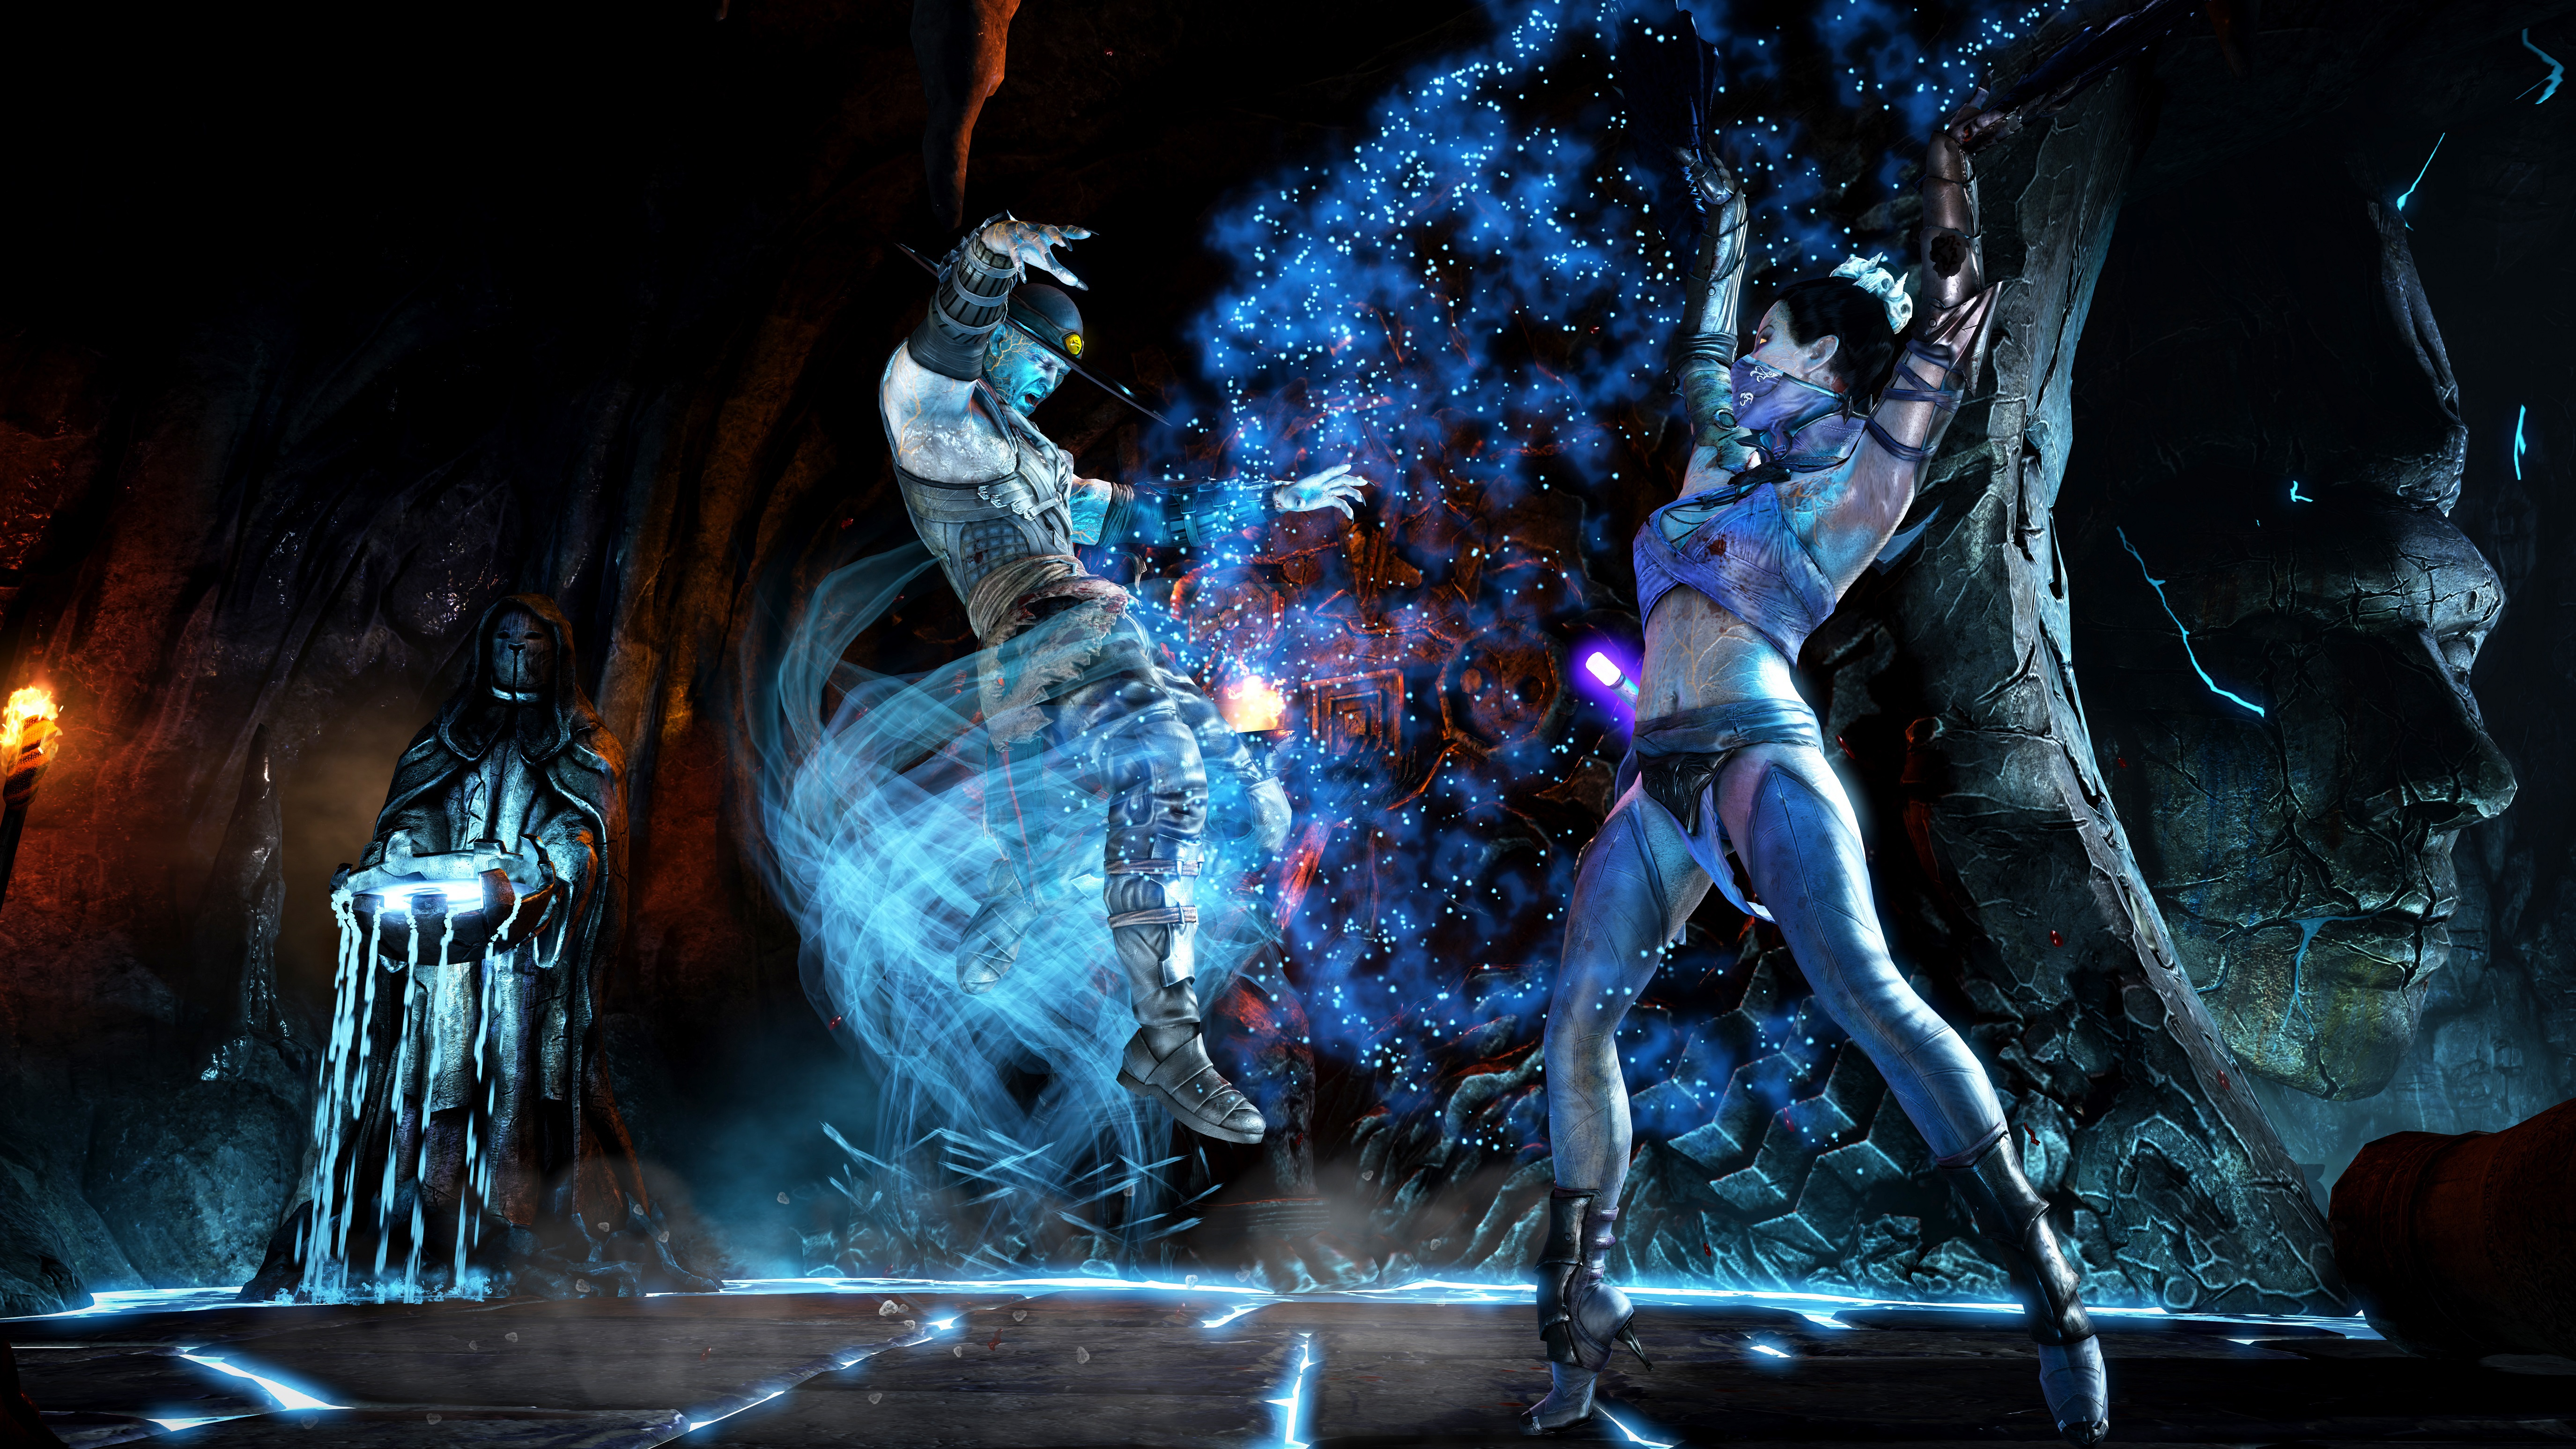 Mortal Kombat X Wallpapers Images Photos Pictures Backgrounds